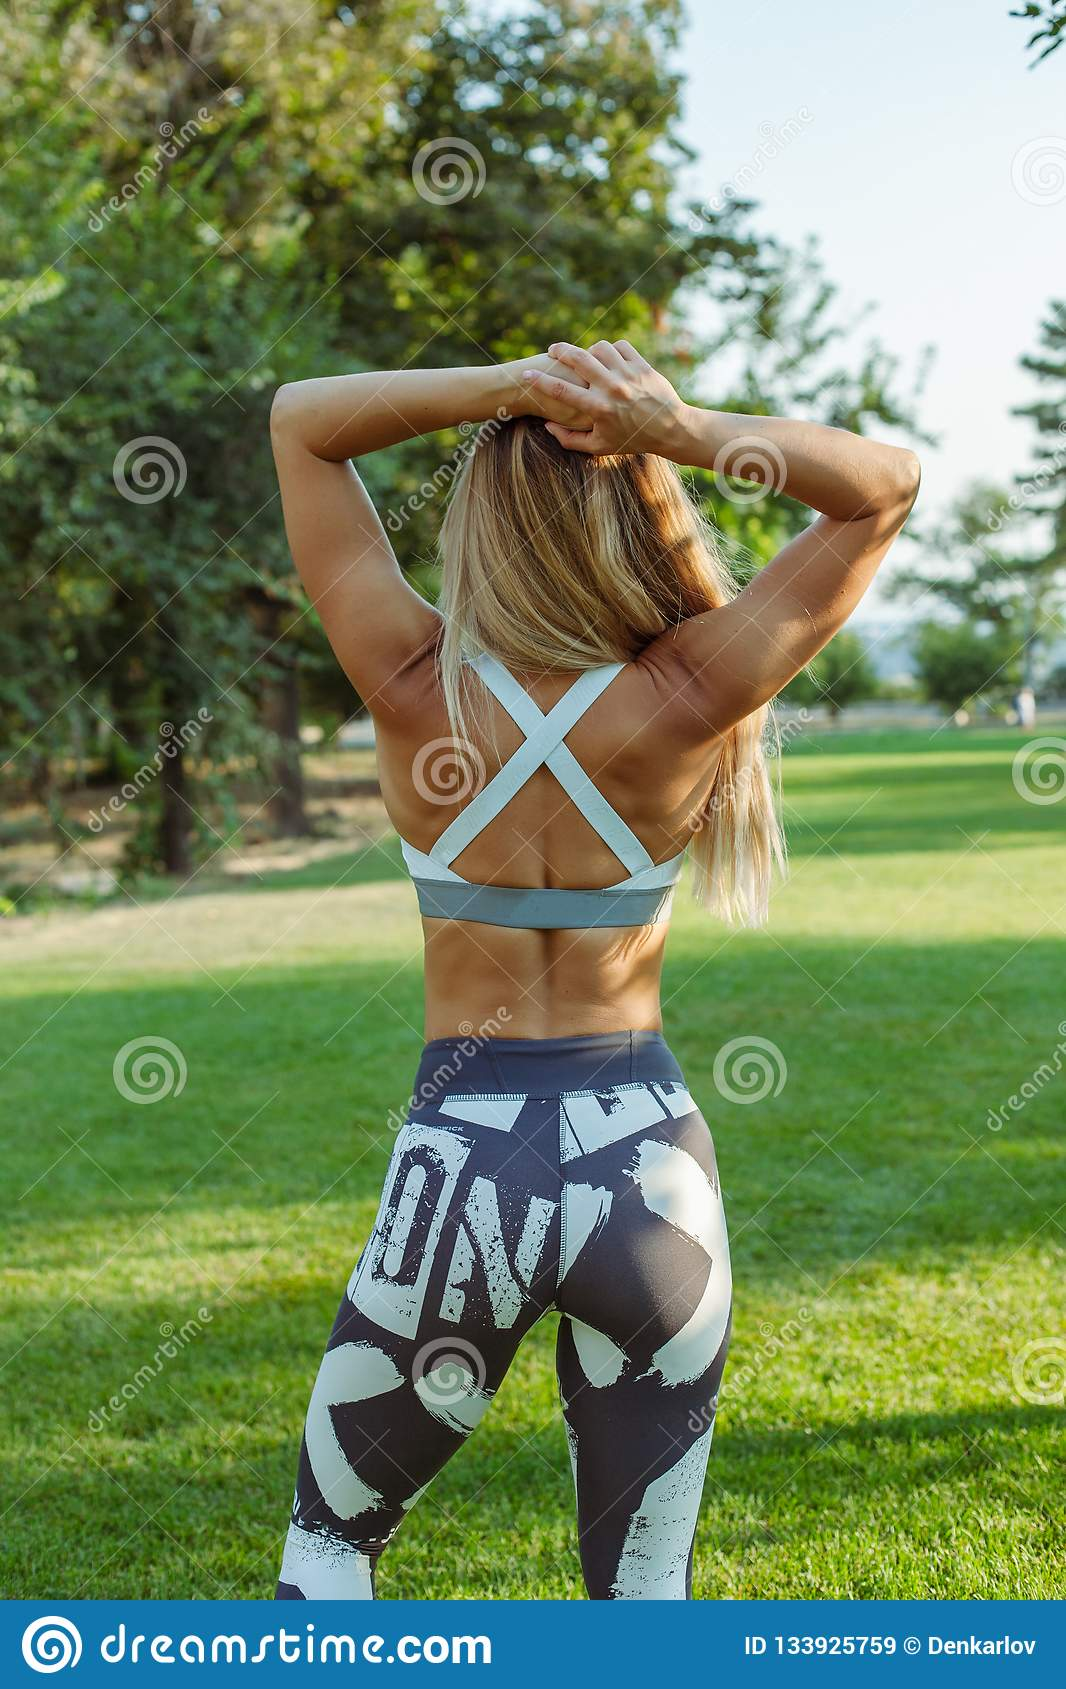 Outdoor training and workout